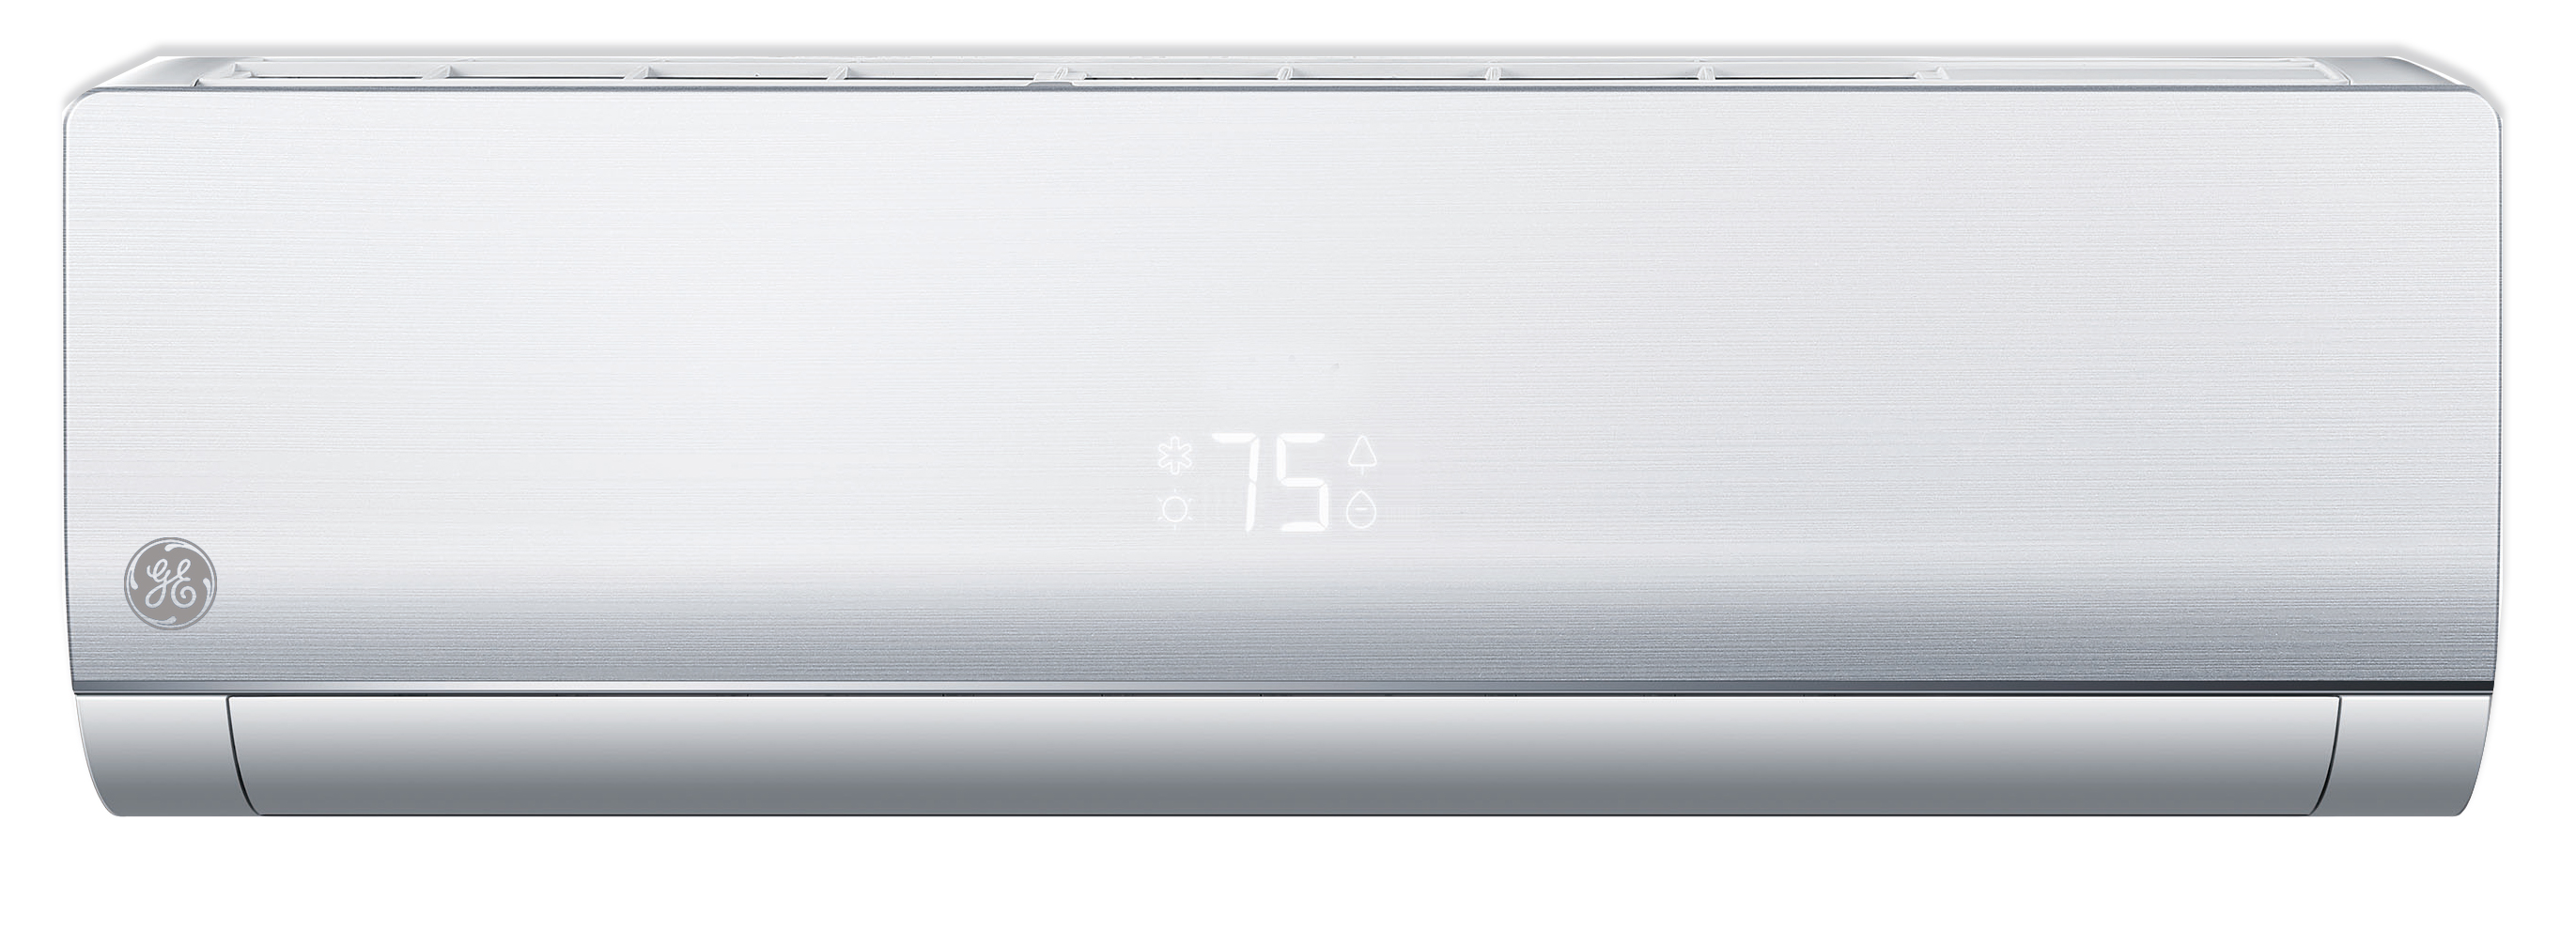 GE ASYW09URDWA 9000 BTU Endure Multi Zone Indoor Wall Unit - Heat and Cool - 208/230V